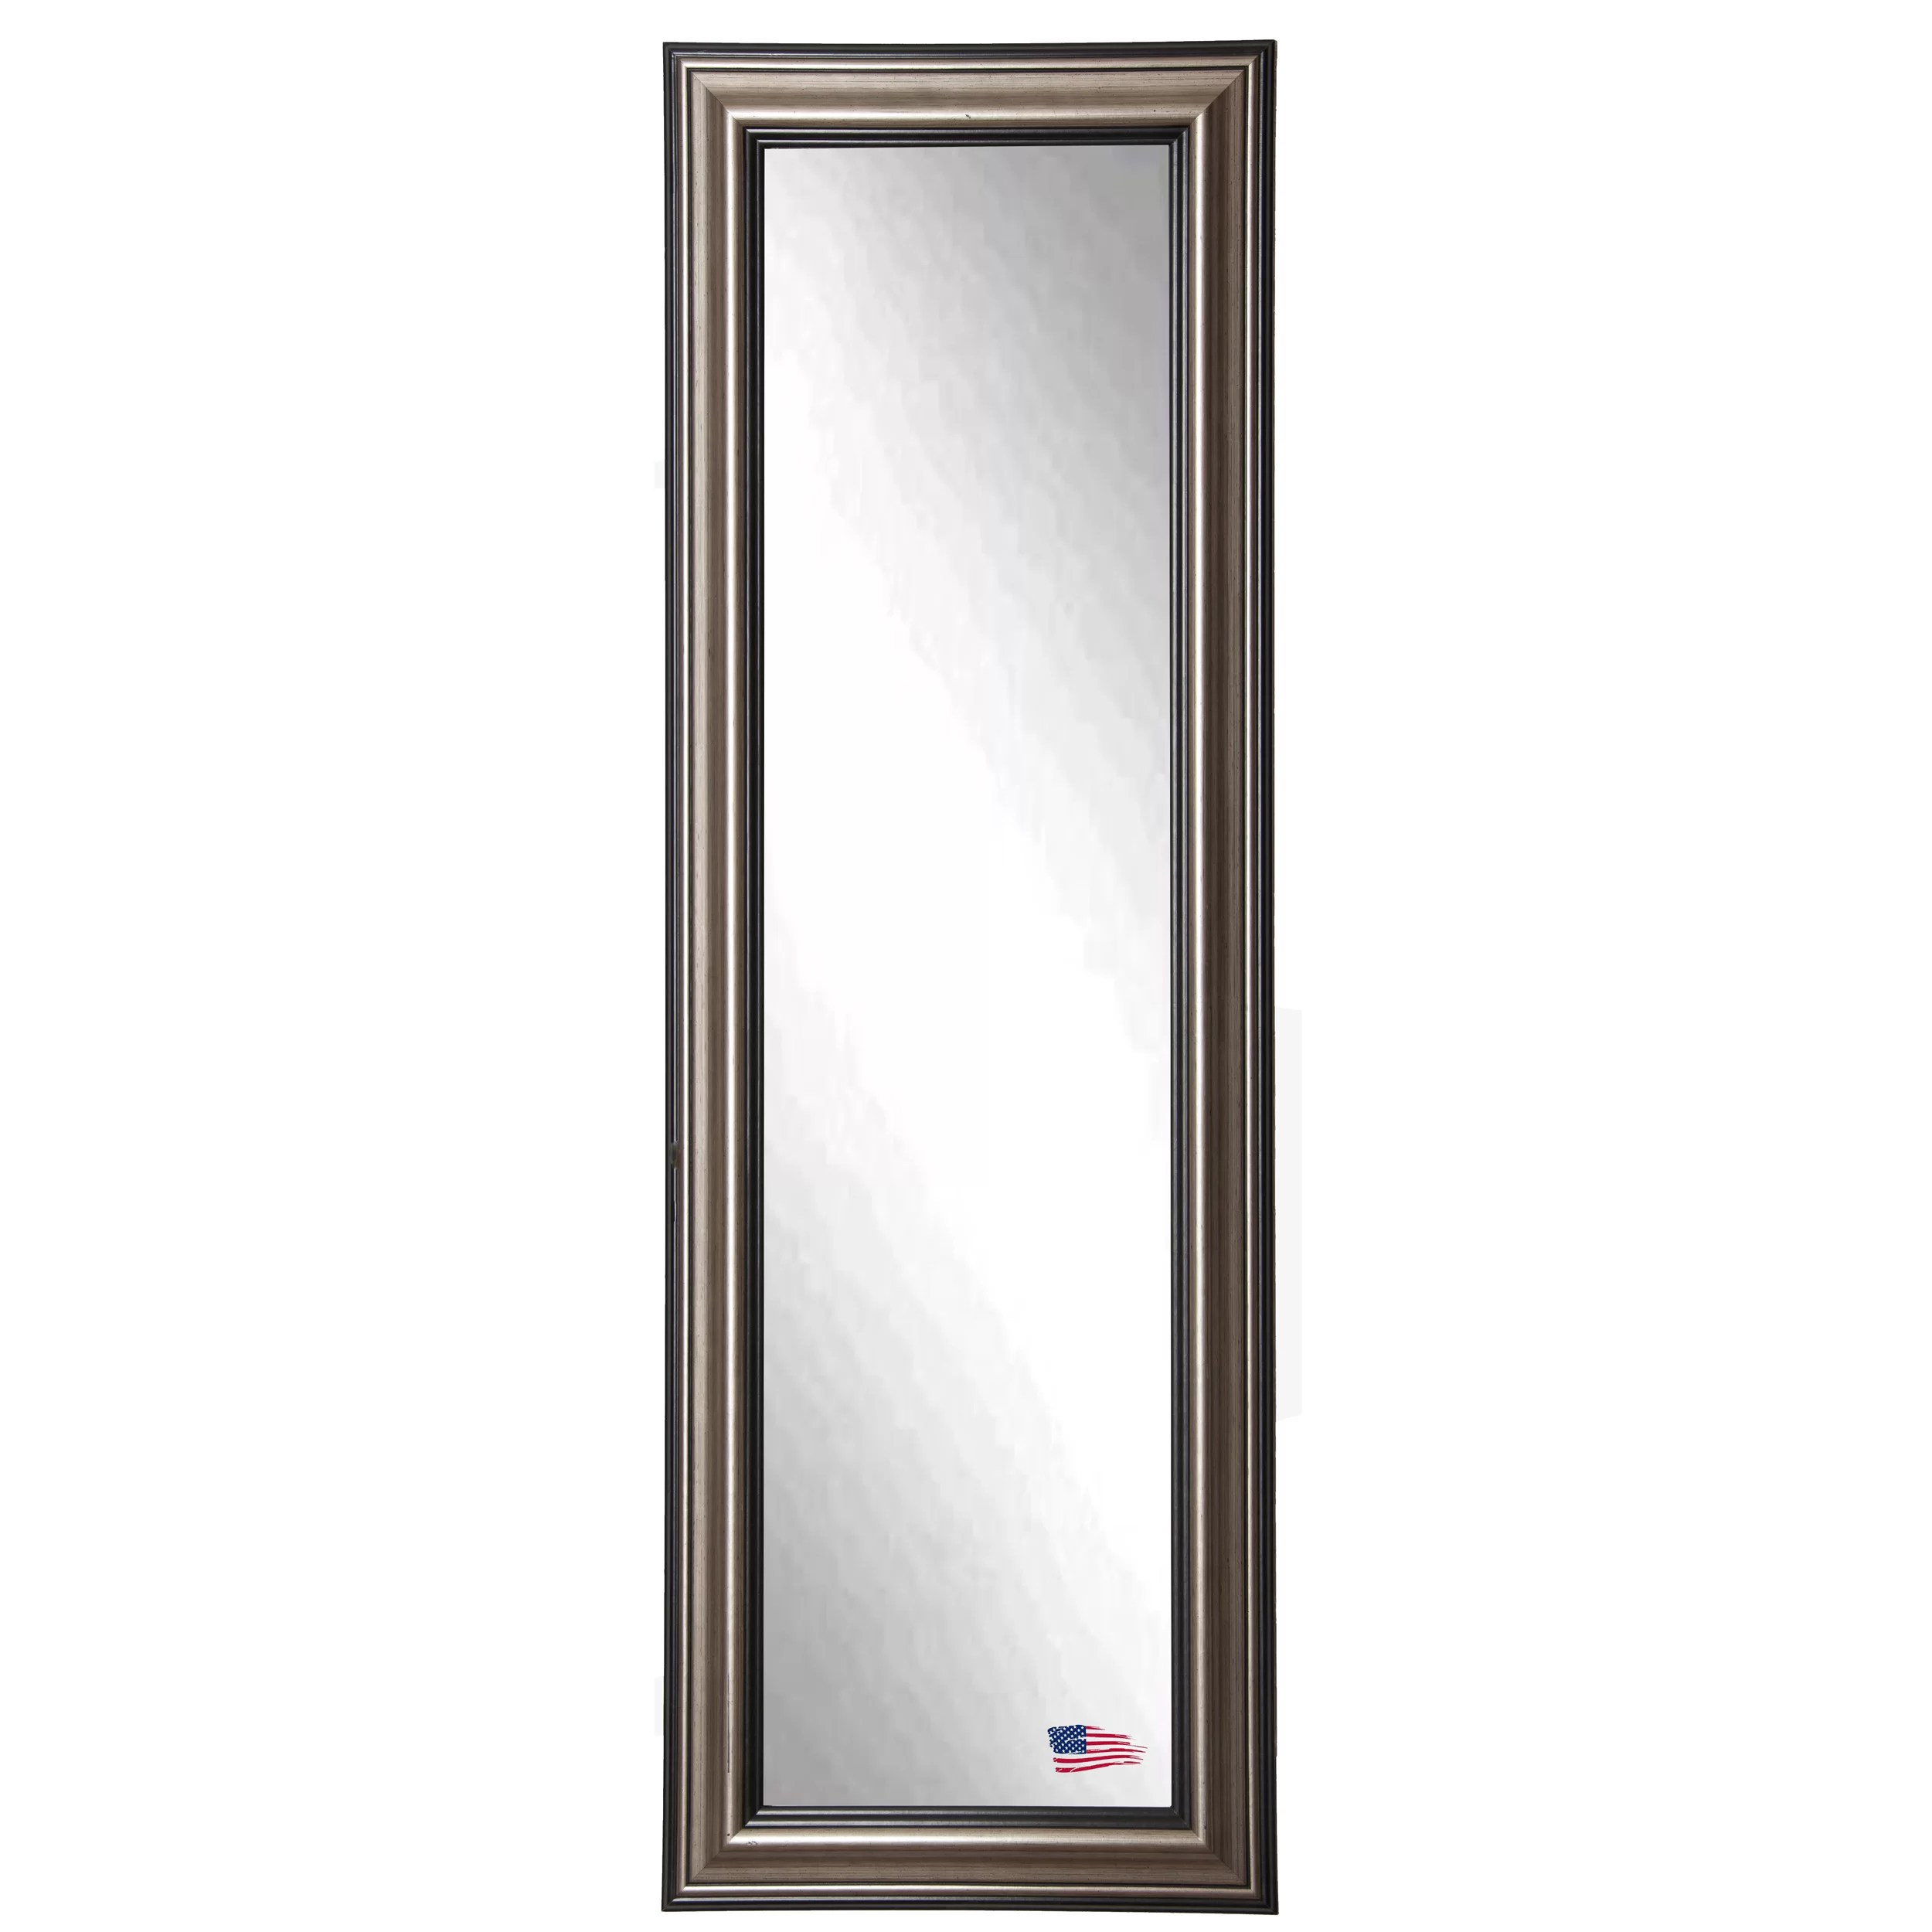 Spiegel Esszimmer Silber Rayne Mirrors Ava Antique Silver Full Length Body Mirror